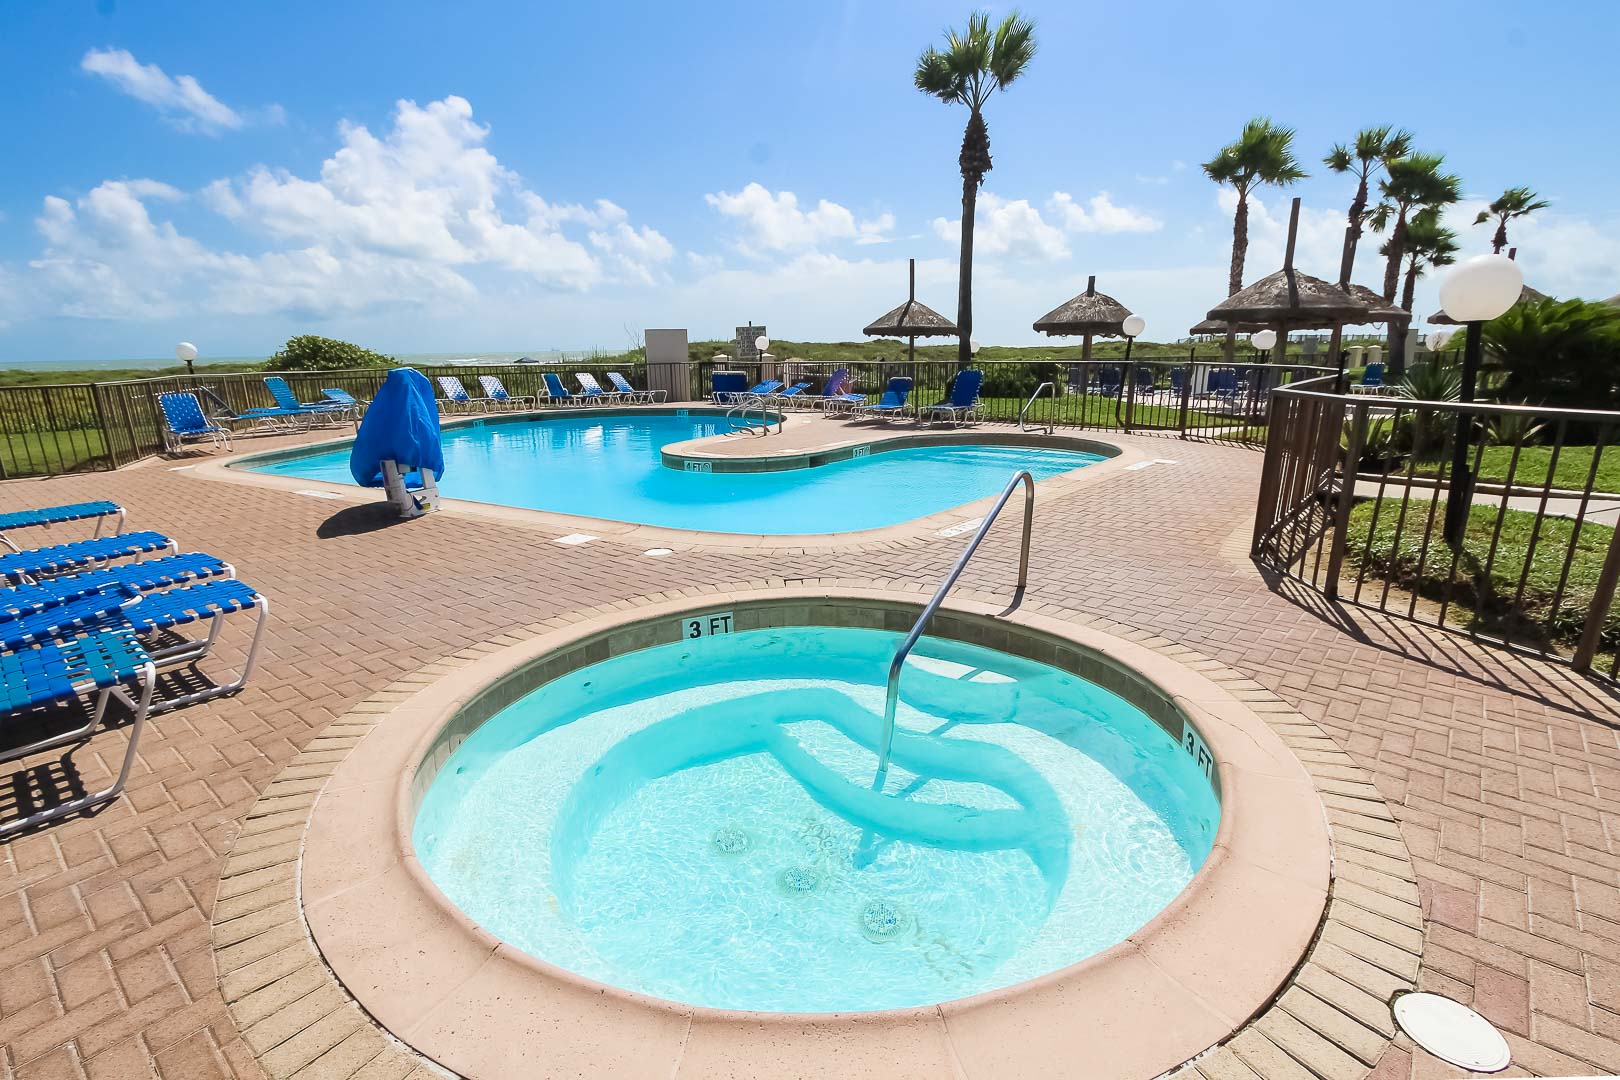 A peaceful outdoor swimming pool and Jacuzzi  at VRI's Royale Beach and Tennis Club.